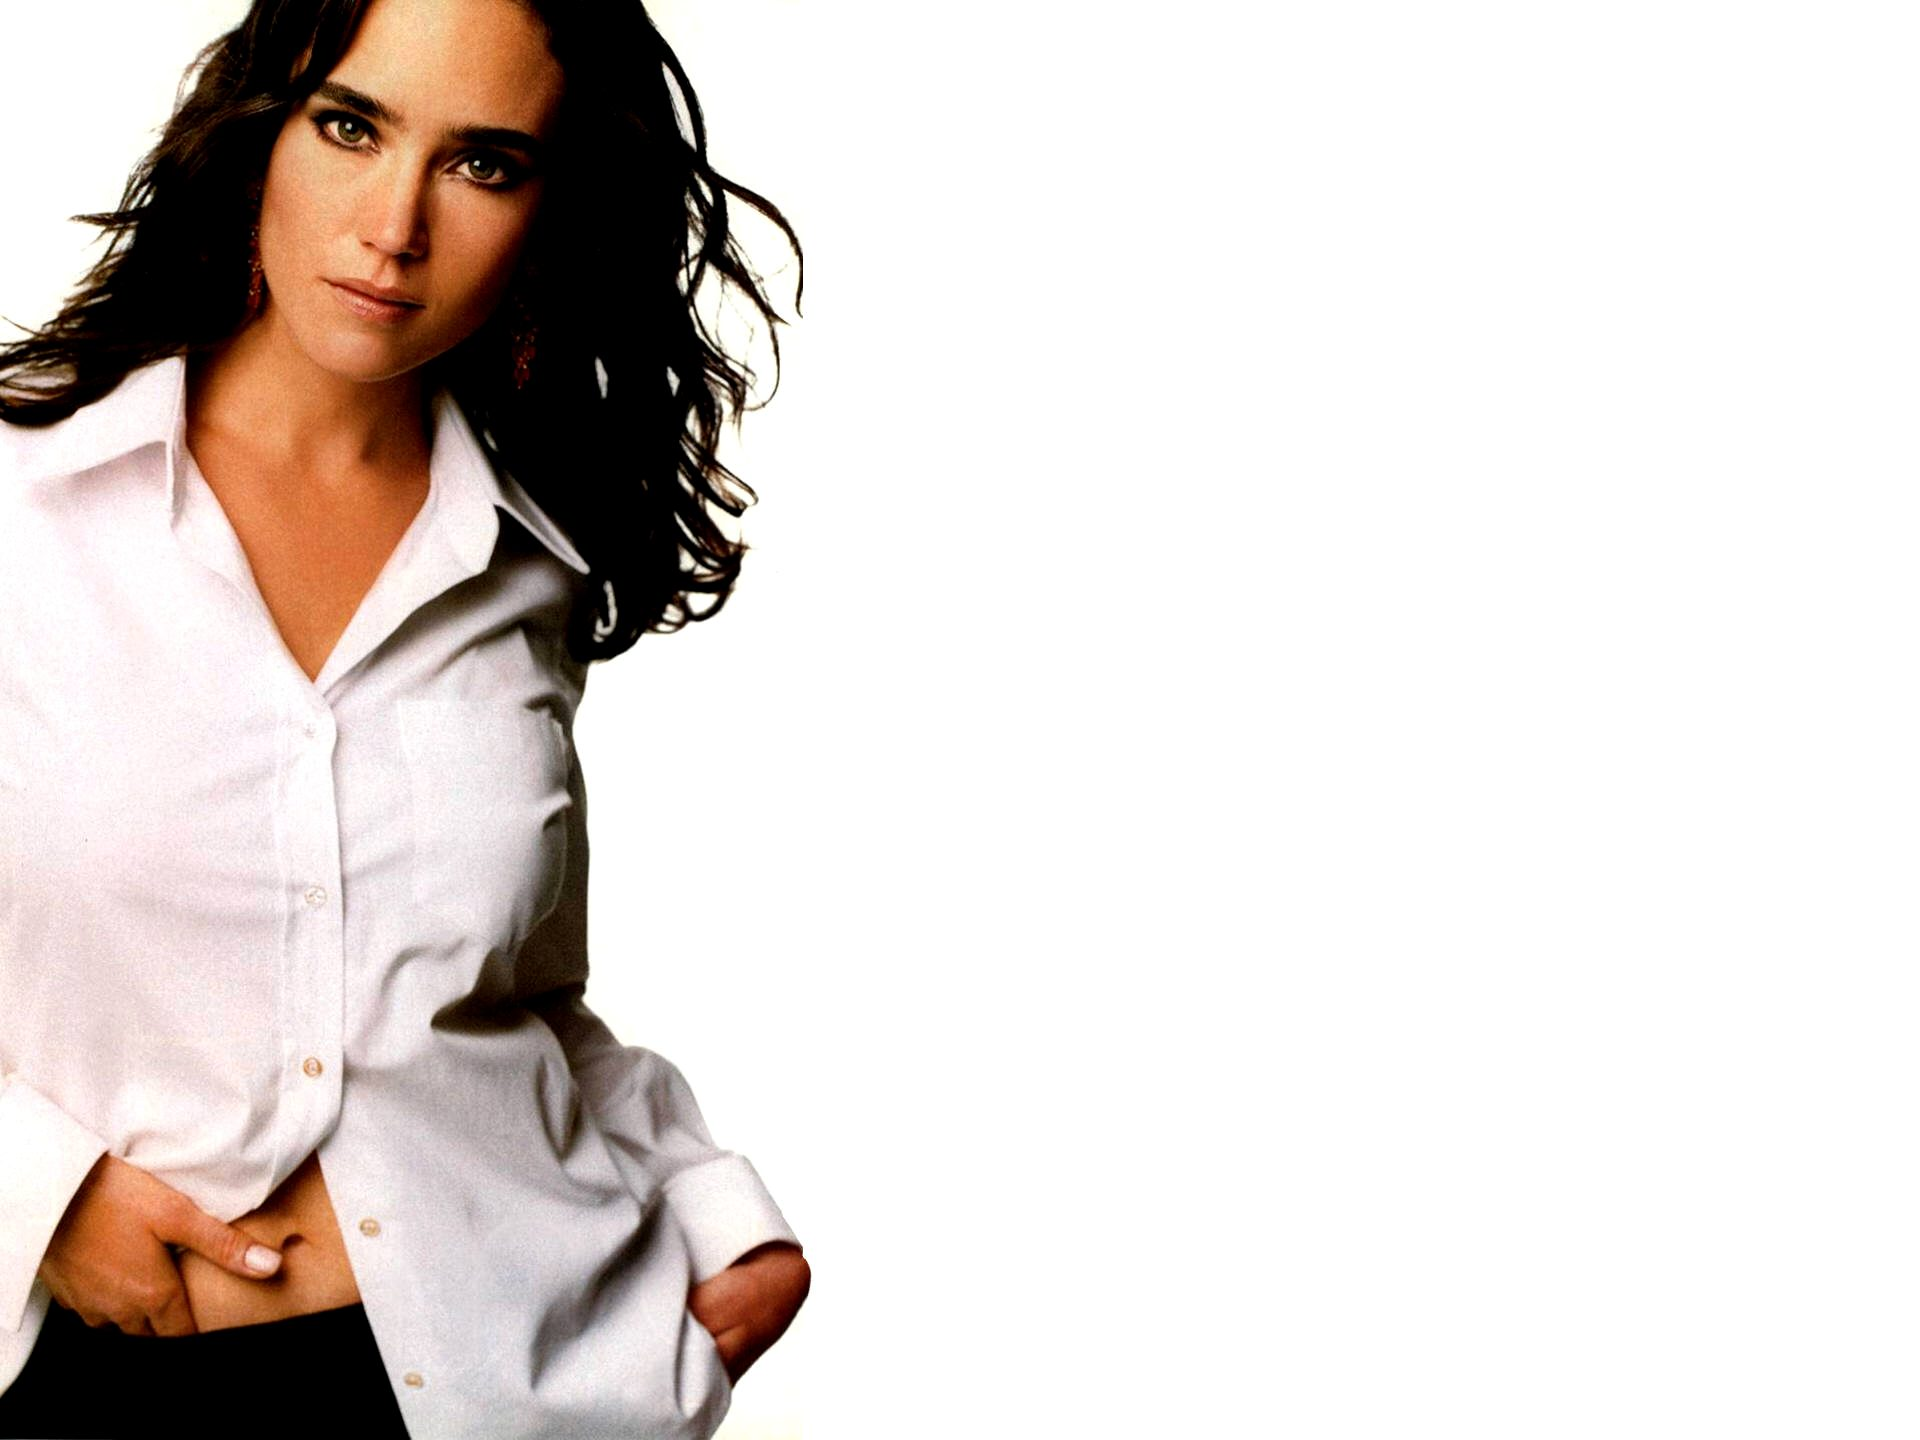 1920x1440 - Jennifer Connelly Wallpapers 16